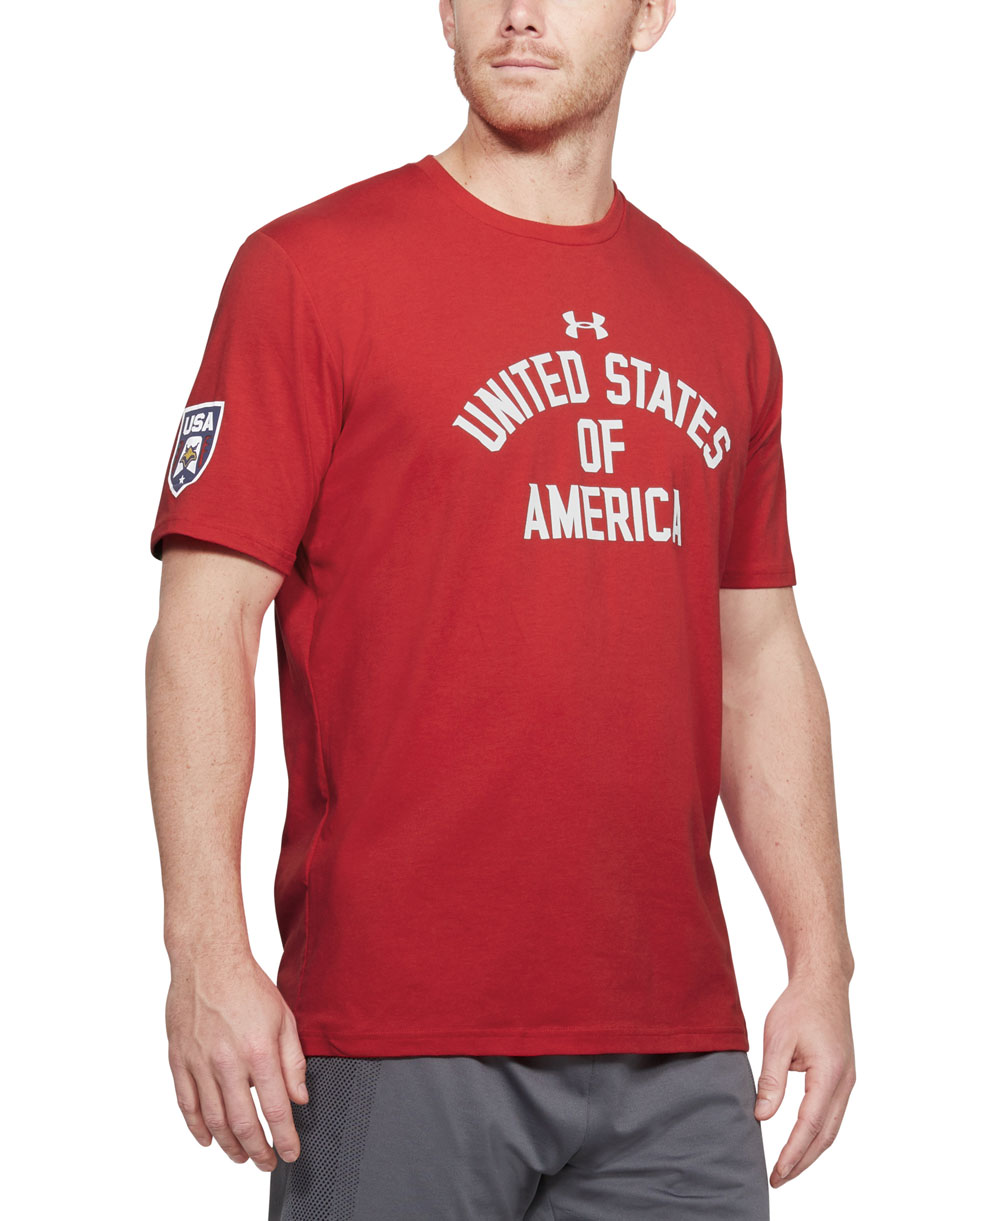 Stars & Stripes Verbiage Camiseta Manga Corta para Hombre Red